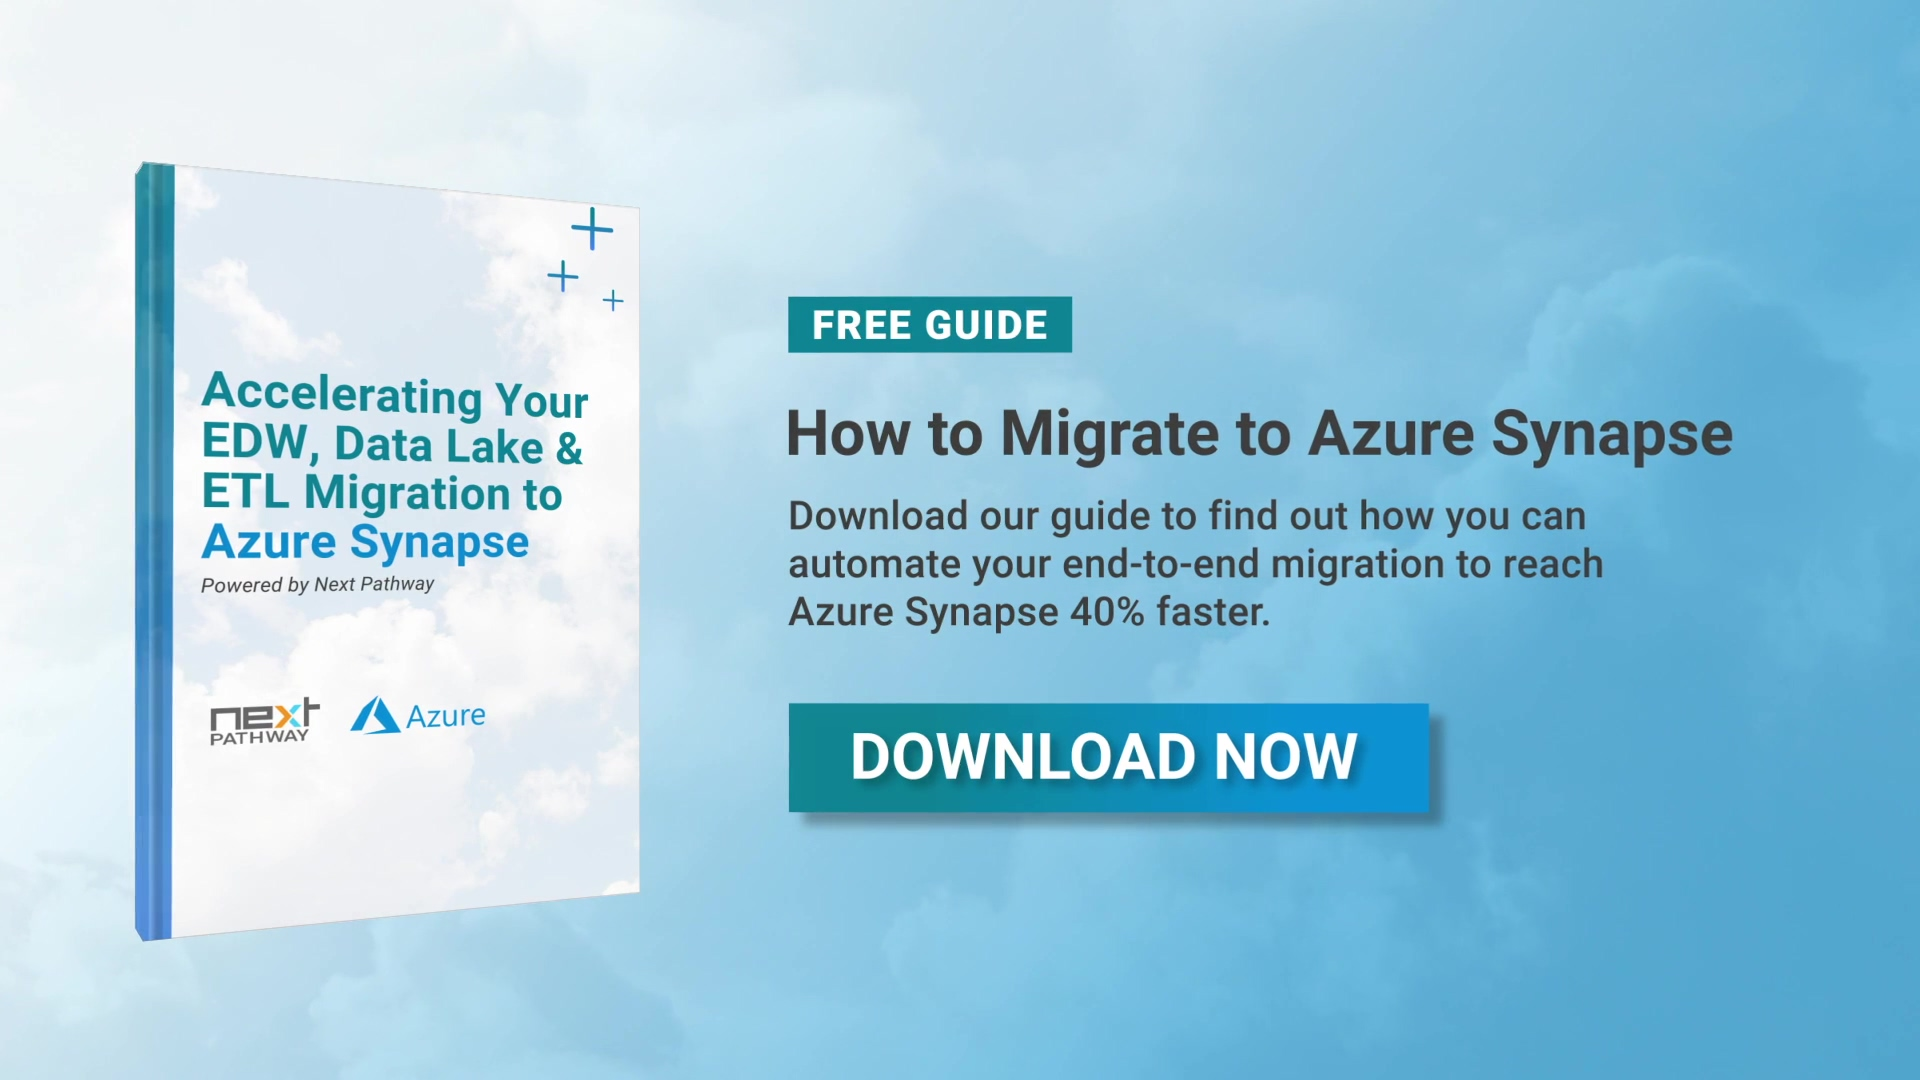 How to Migrate to Azure